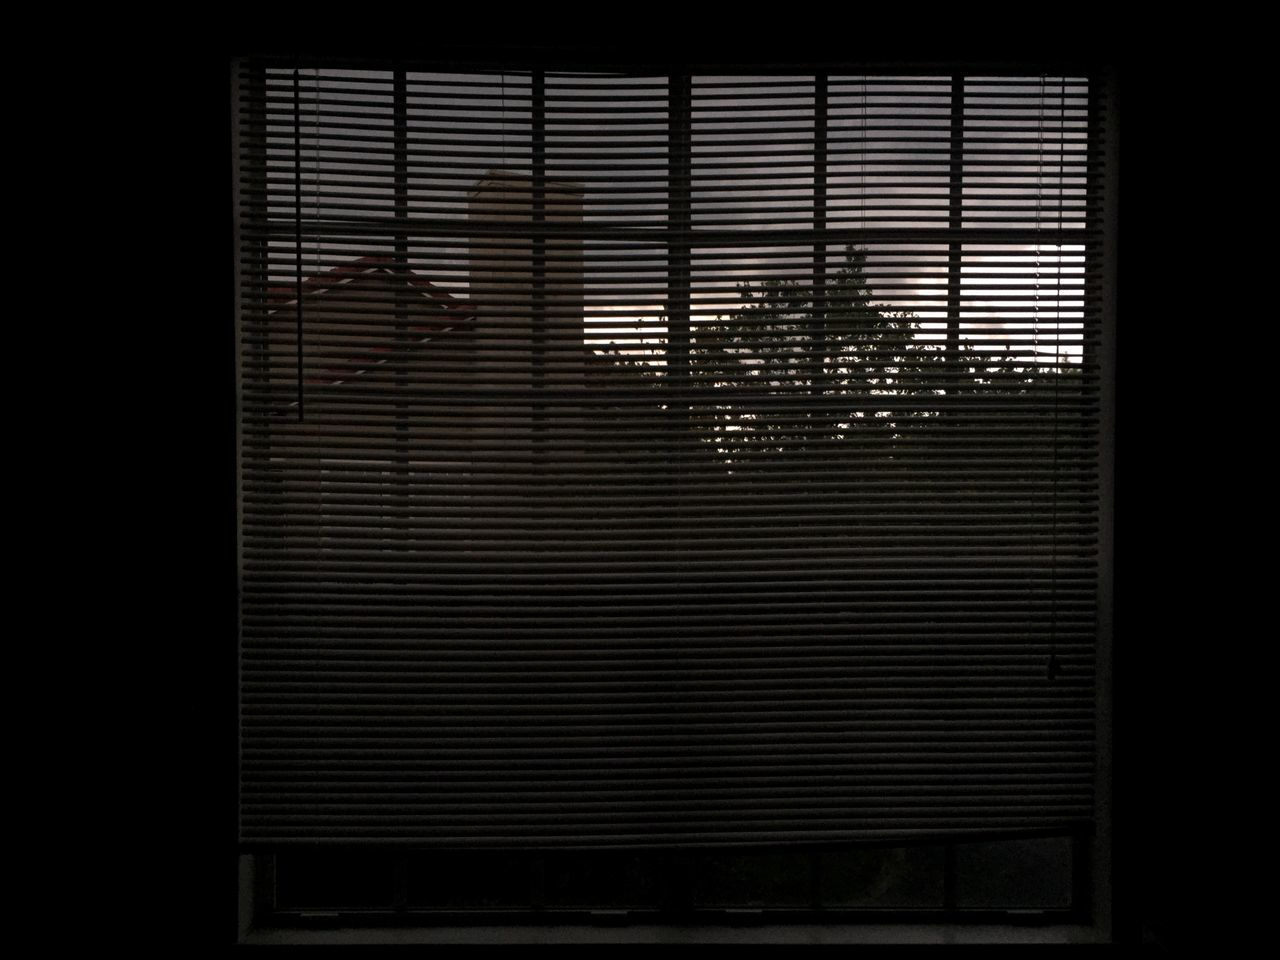 blinds, shutter, window, indoors, no people, architecture, corrugated iron, close-up, day